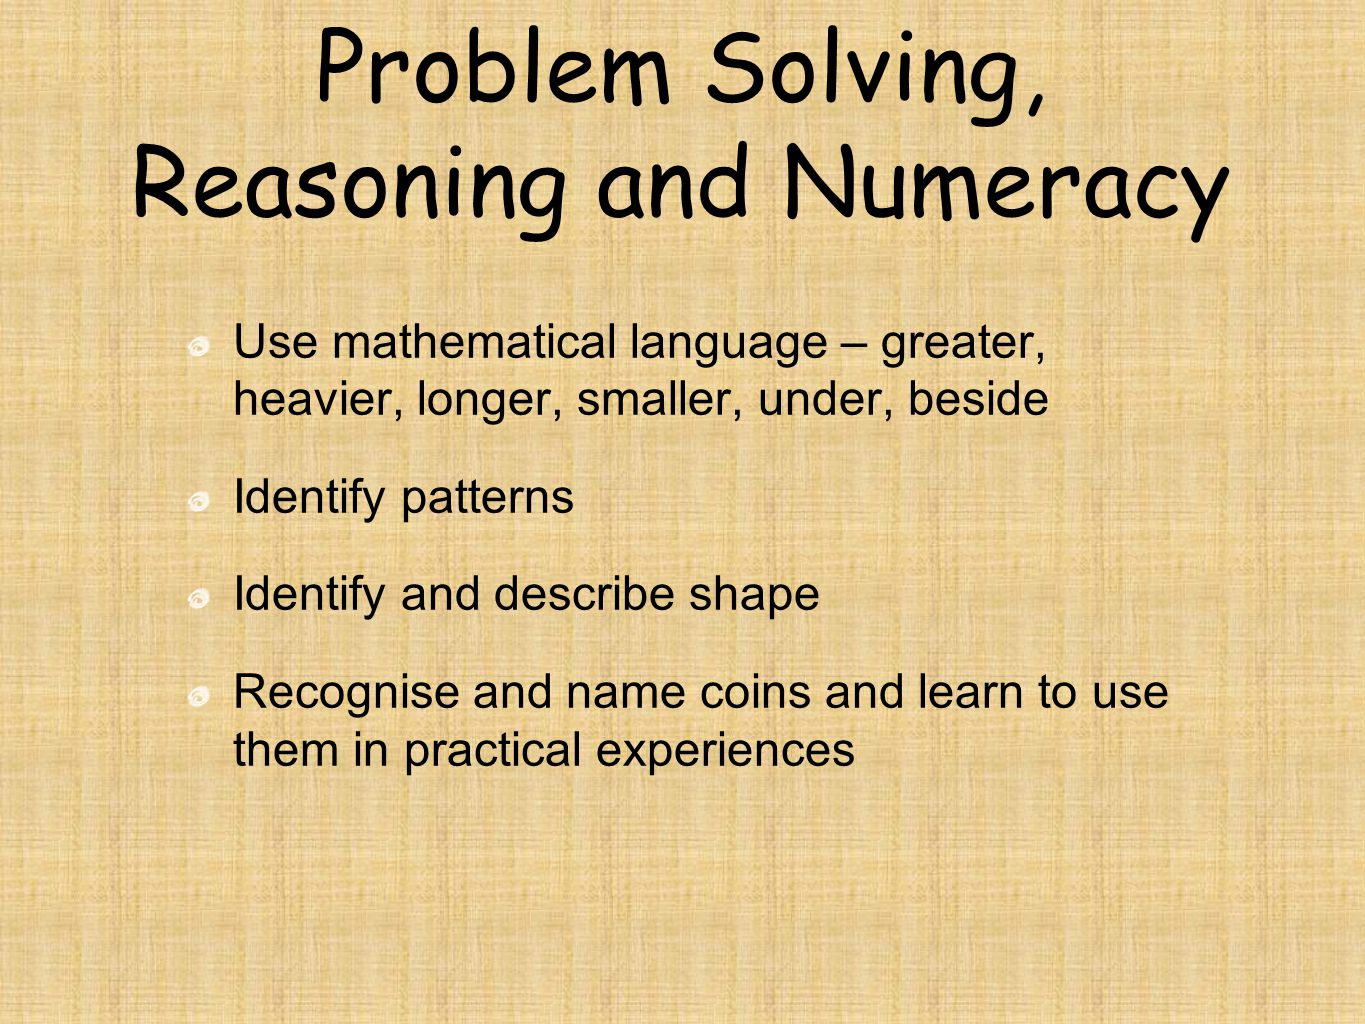 Problem Solving, Reasoning and Numeracy Use mathematical language – greater, heavier, longer, smaller, under, beside Identify patterns Identify and describe shape Recognise and name coins and learn to use them in practical experiences